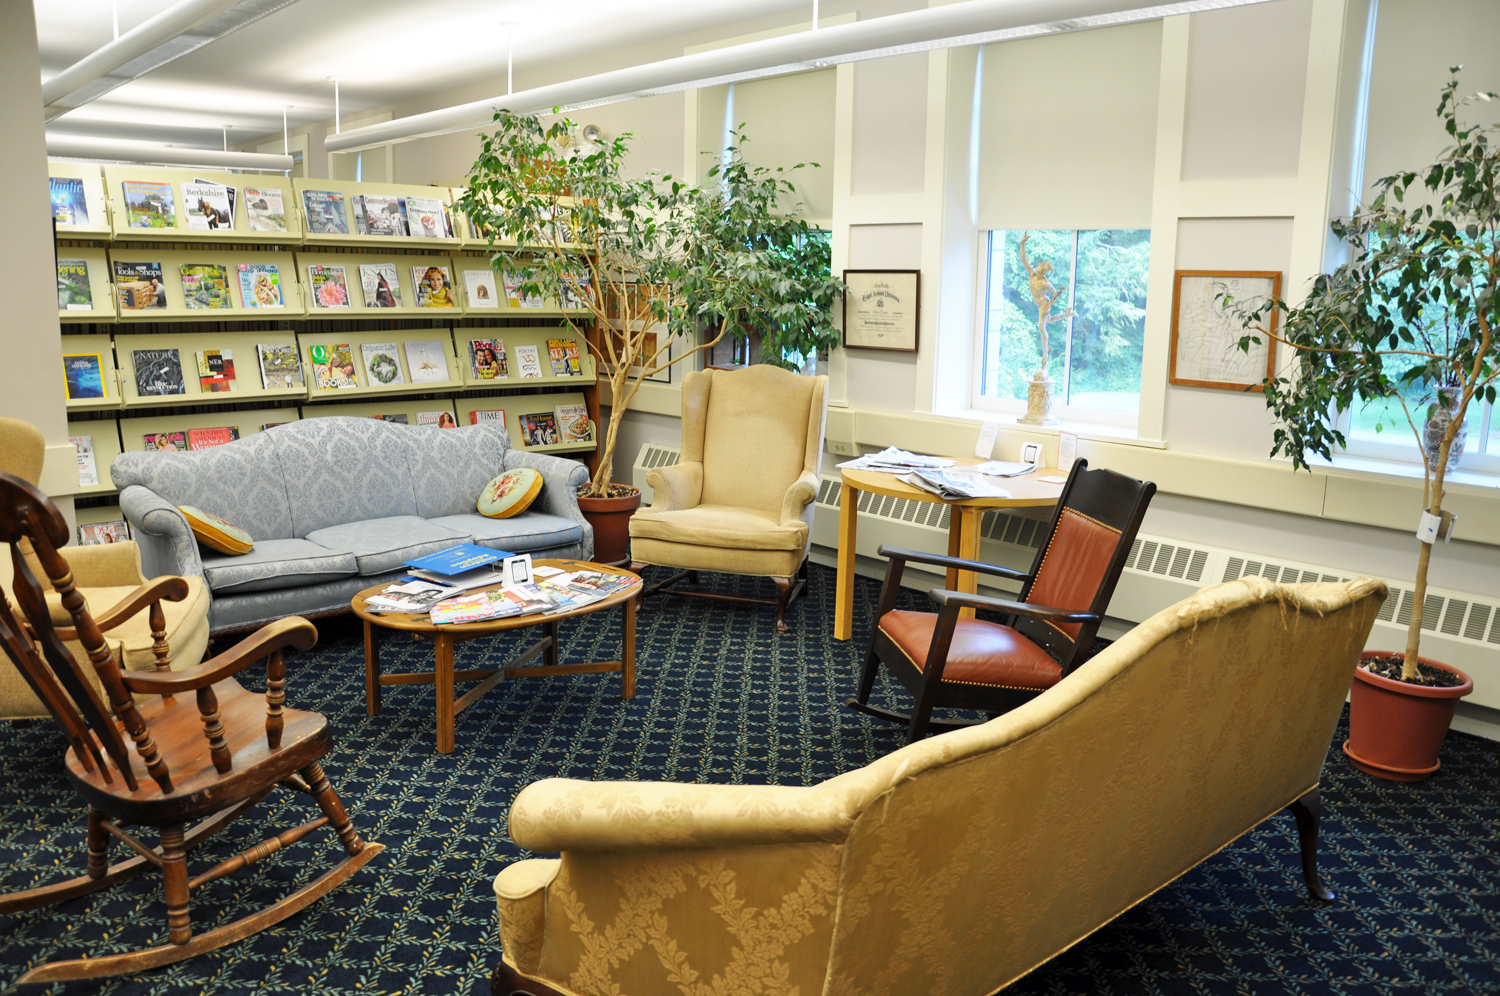 SEATING FOR READING IN PERIODICALS